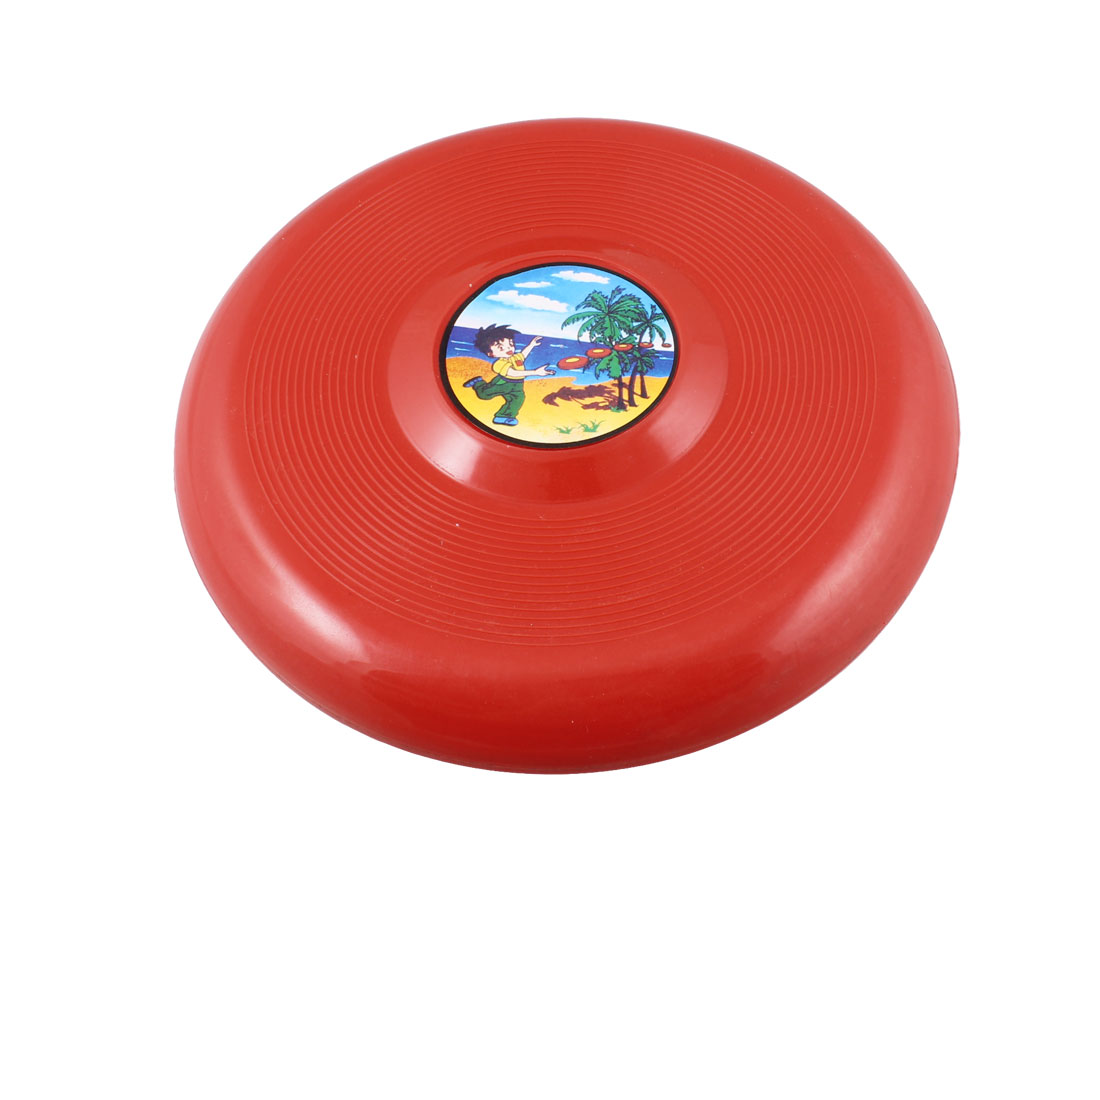 "Child Red Plastic 7.3"" Diameter Flying Round Disc Frisbee Toy"